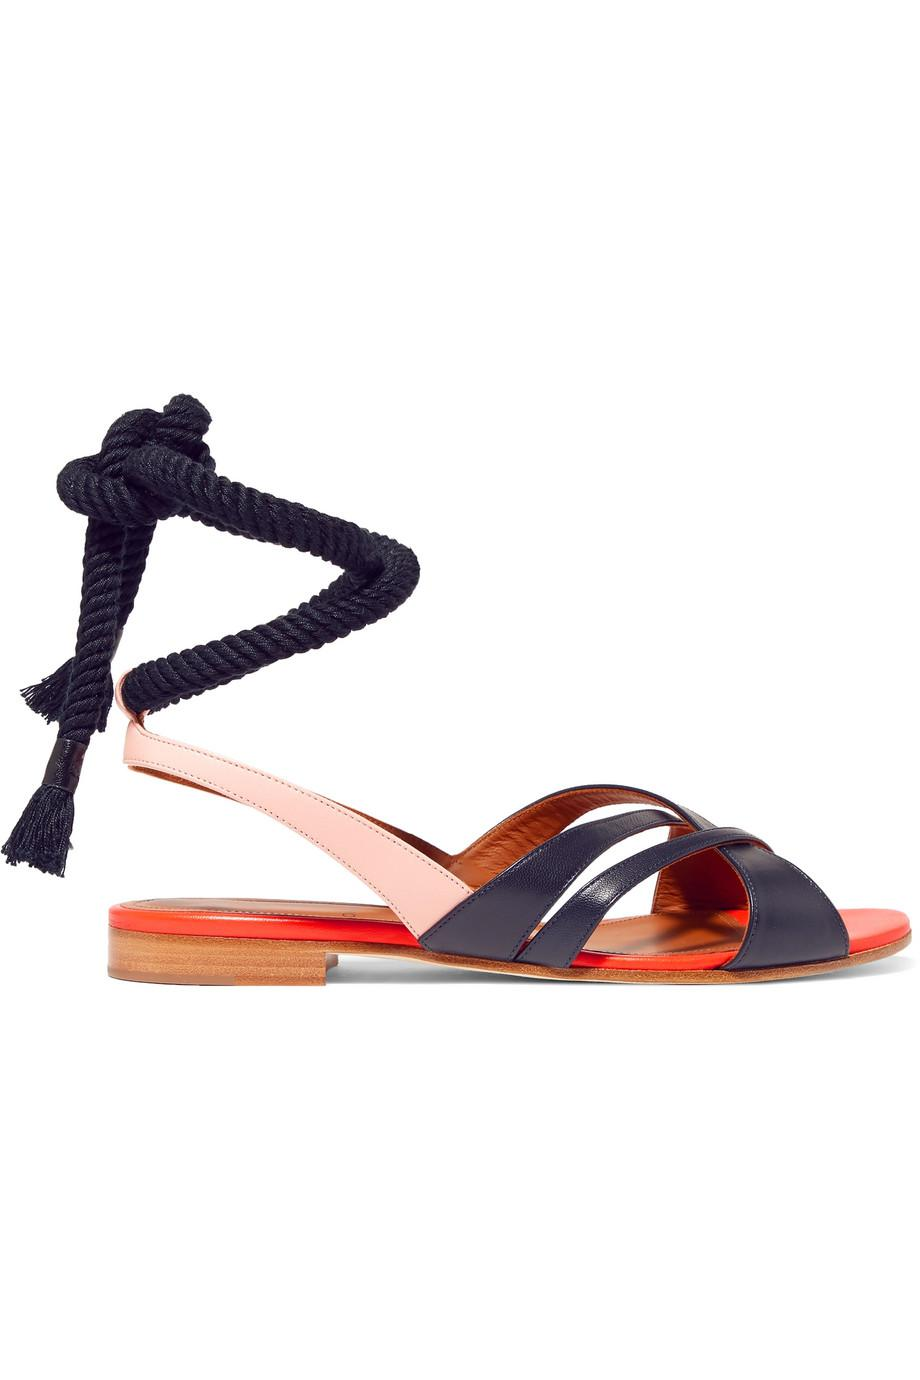 + Roksanda Marlene Color-block Leather Sandals - Midnight blue Malone Souliers mcG8WX